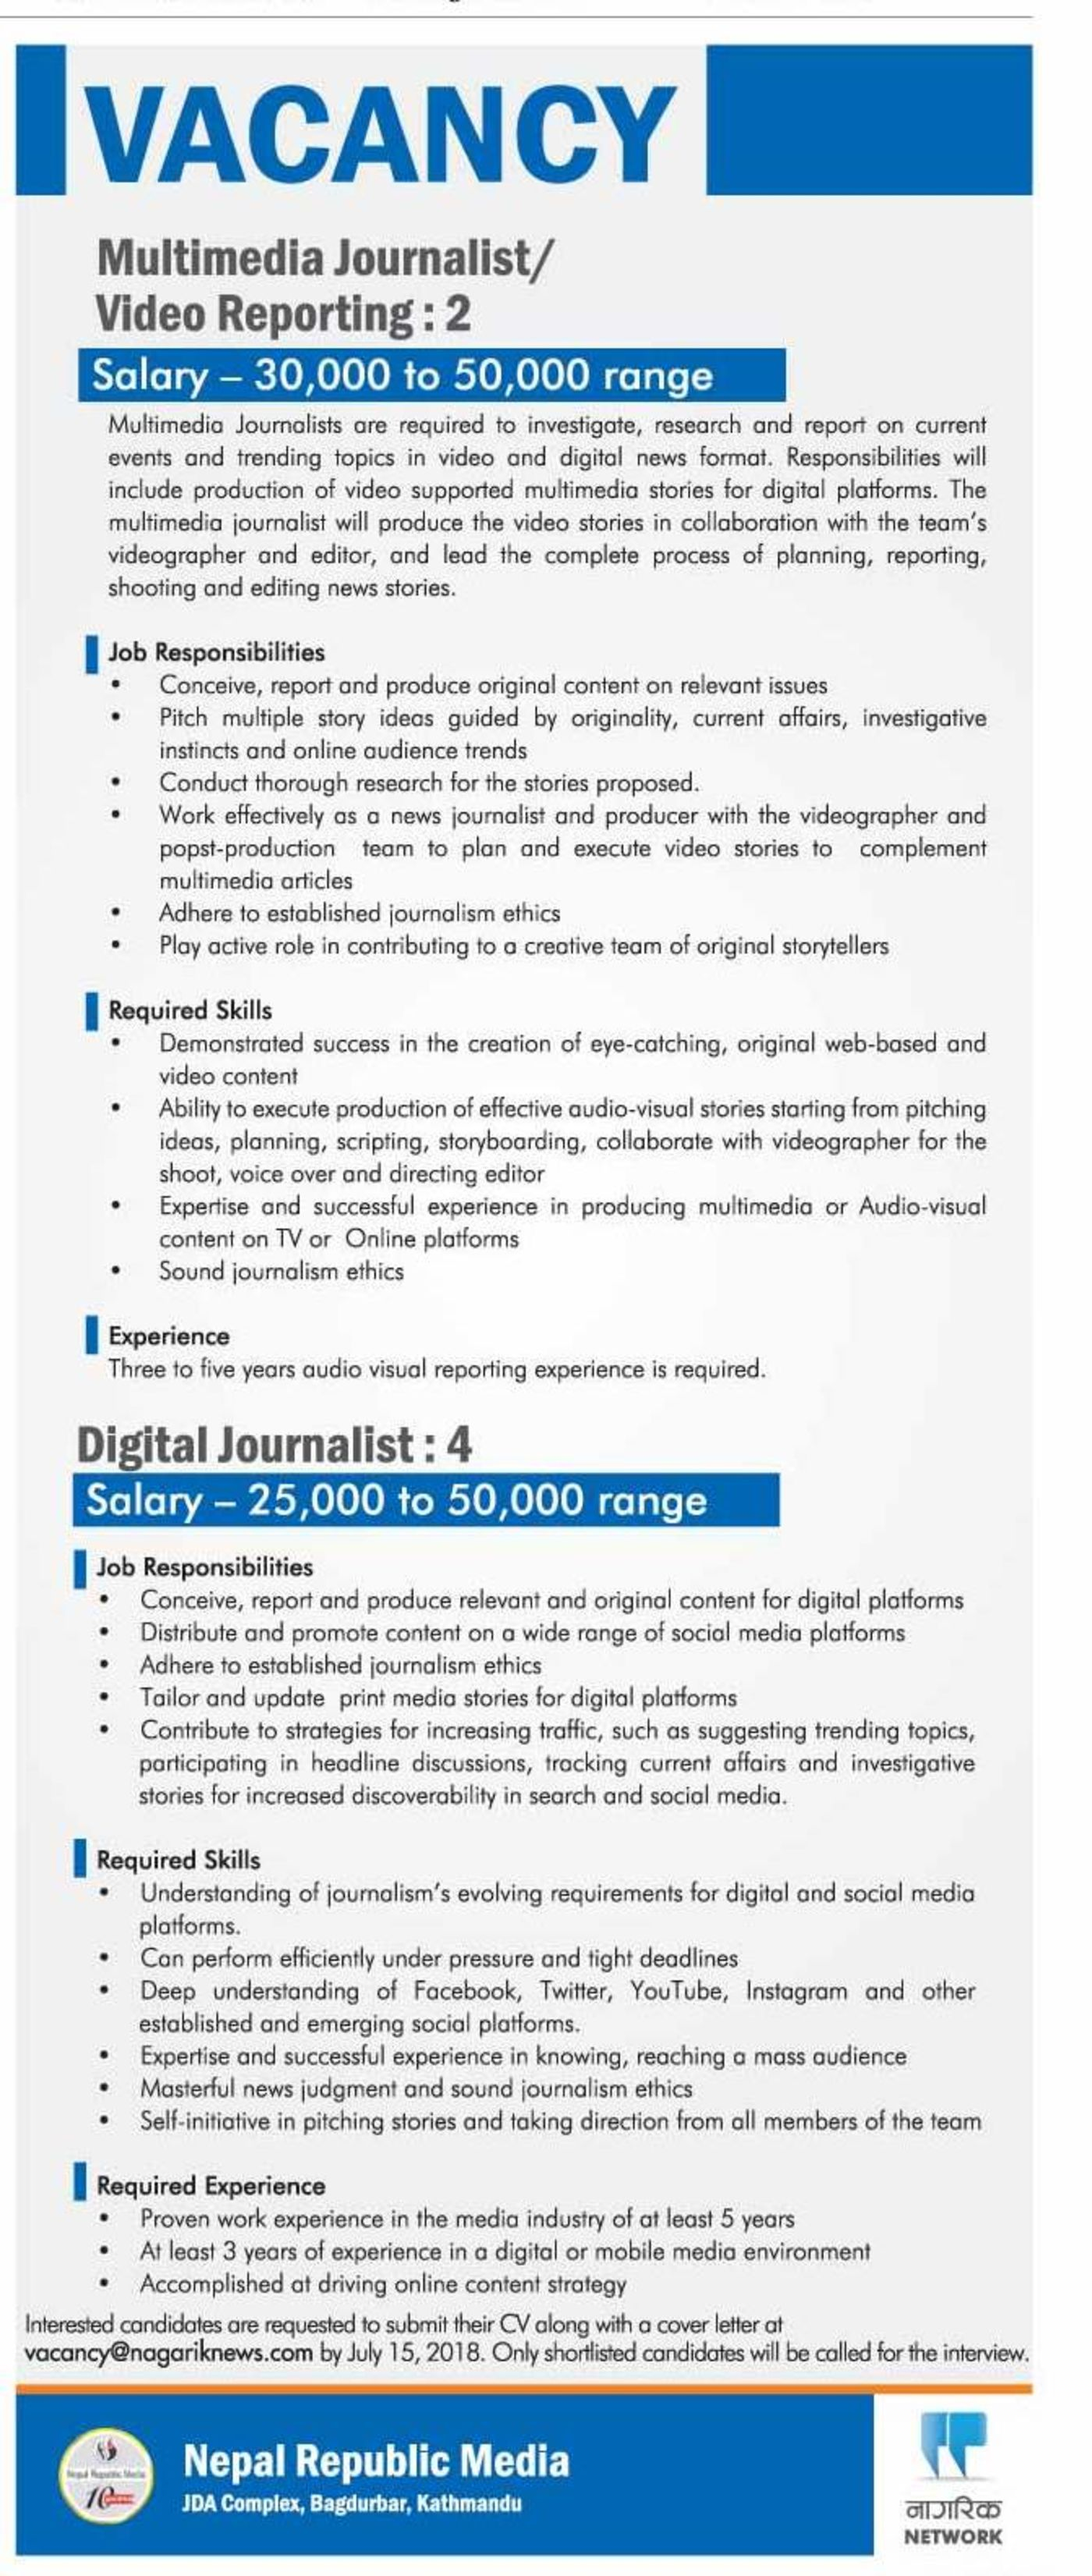 Jobs Nepal - Vacancy - Multimedia Journalist/ Video